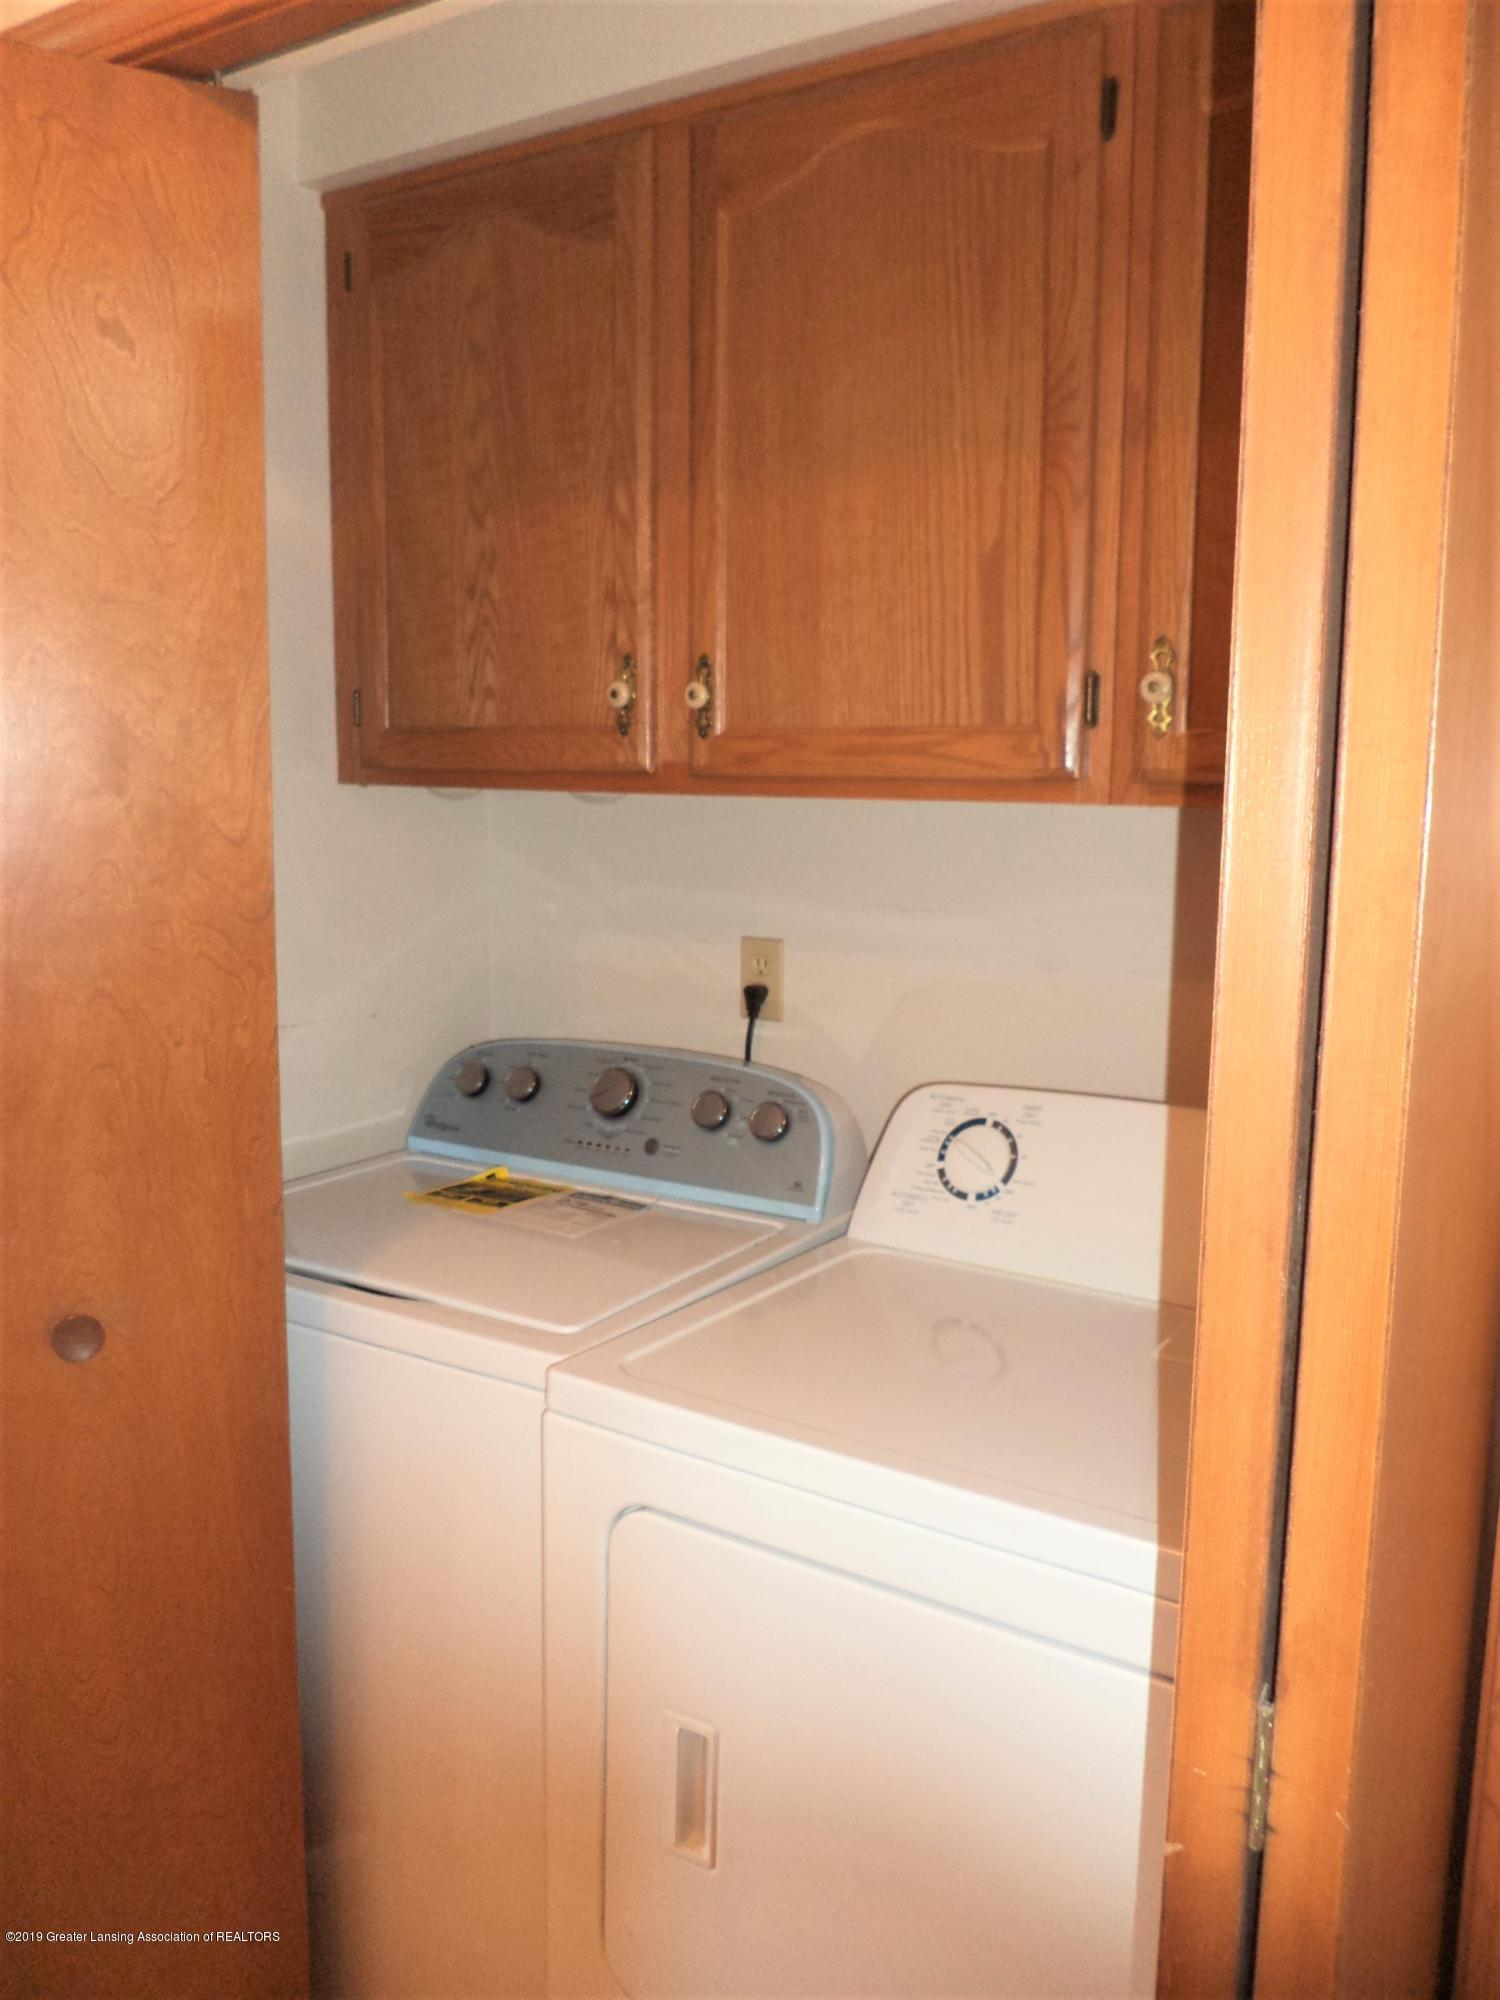 5535 W Parks Rd - Laundry area - 15